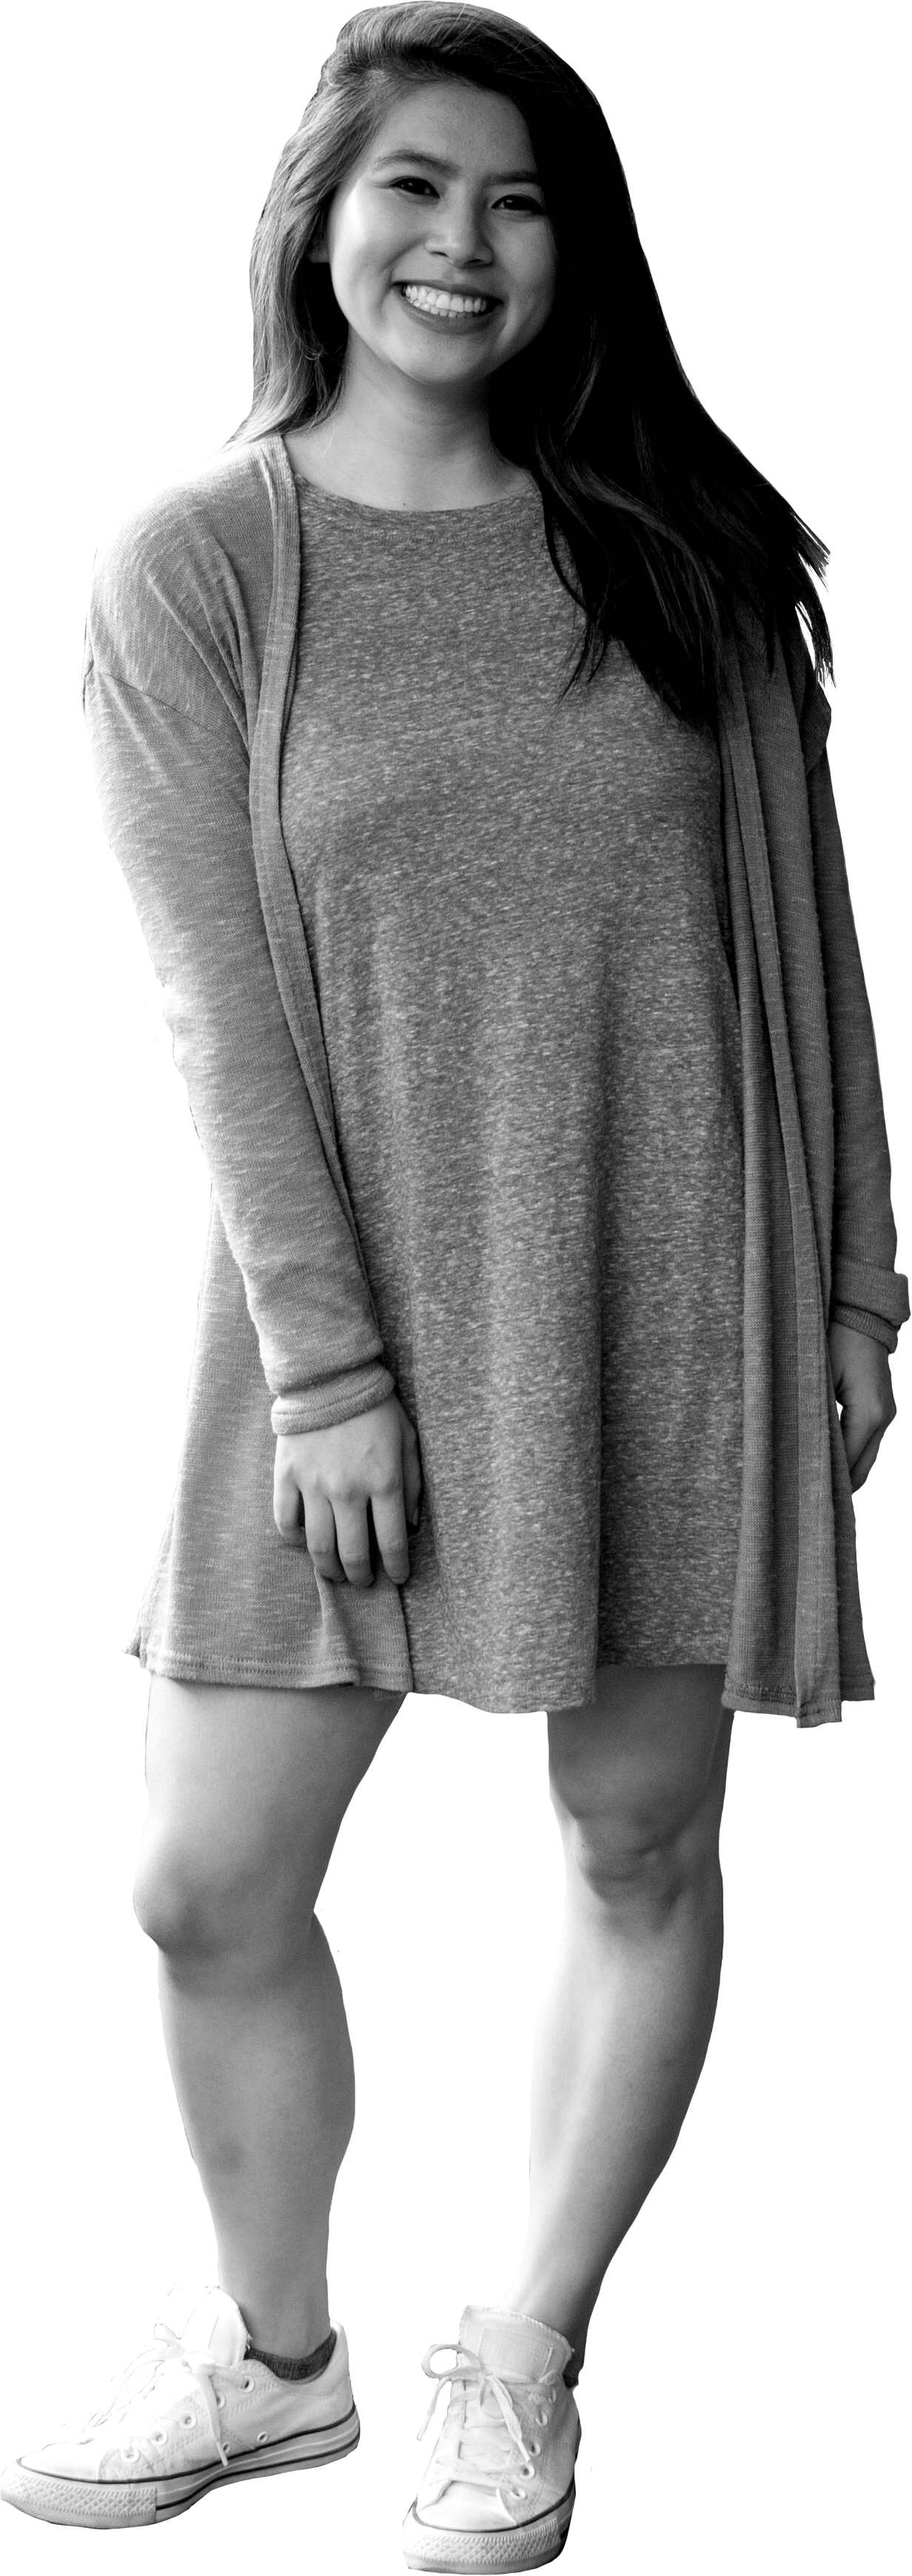 Image of Kimmie standing with her weight on her left hip, smiling at the camera. Kimmie is of Asian descent and has long, straight dark hair and a huge smile. She is wearing a swingy dress and a cardigan with white converse.